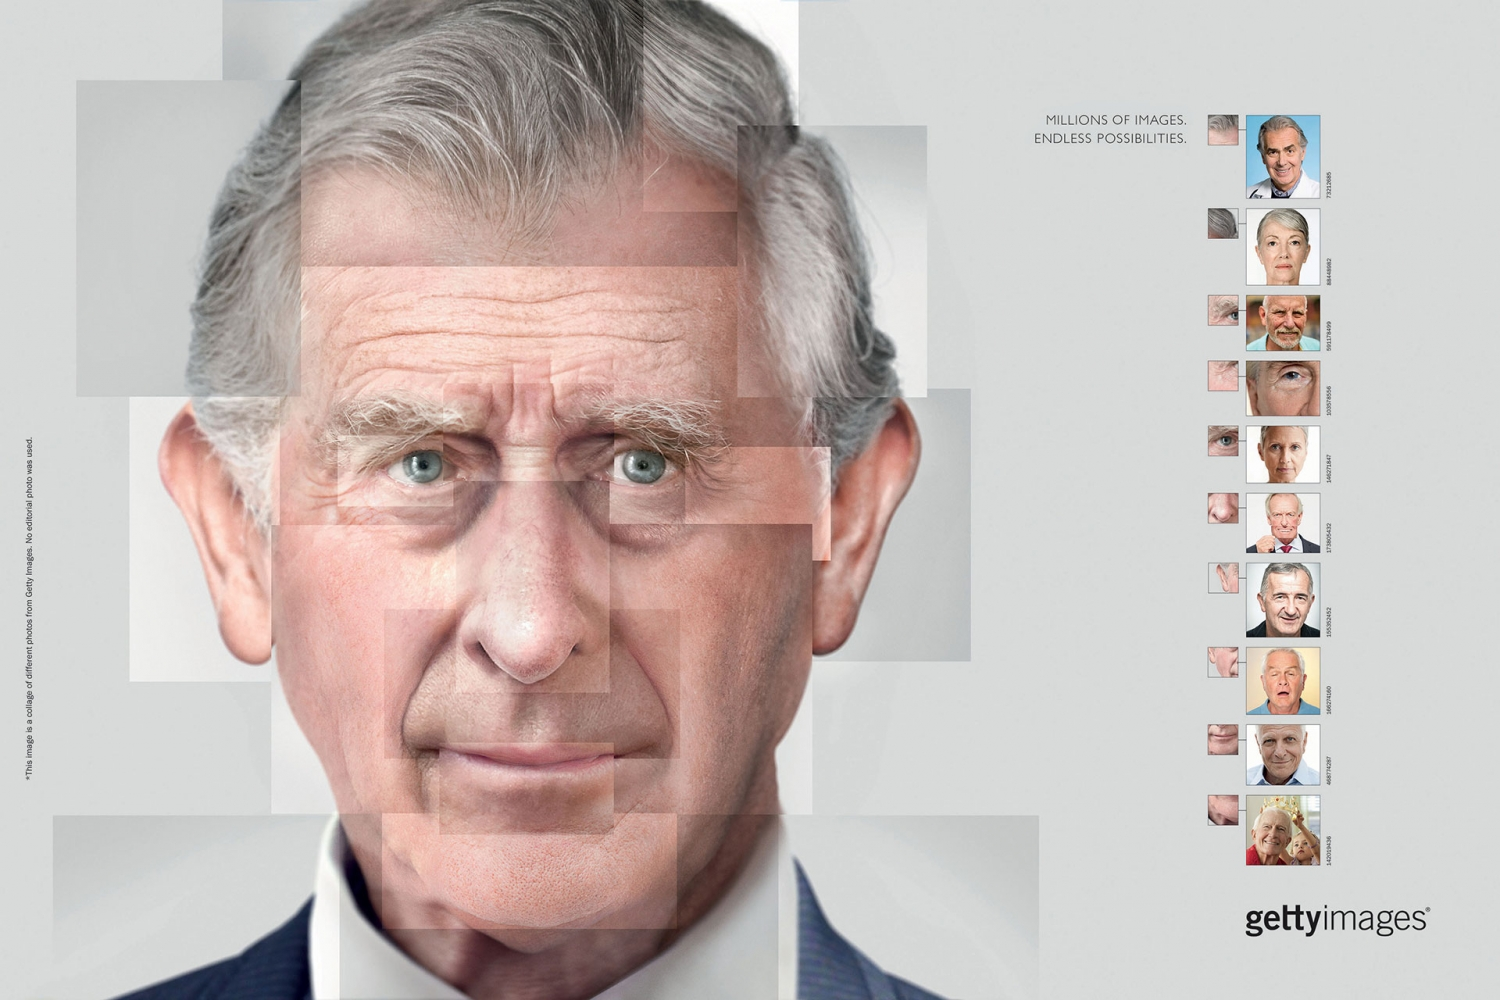 Getty Images - Endless Possibilities - Prince Charles